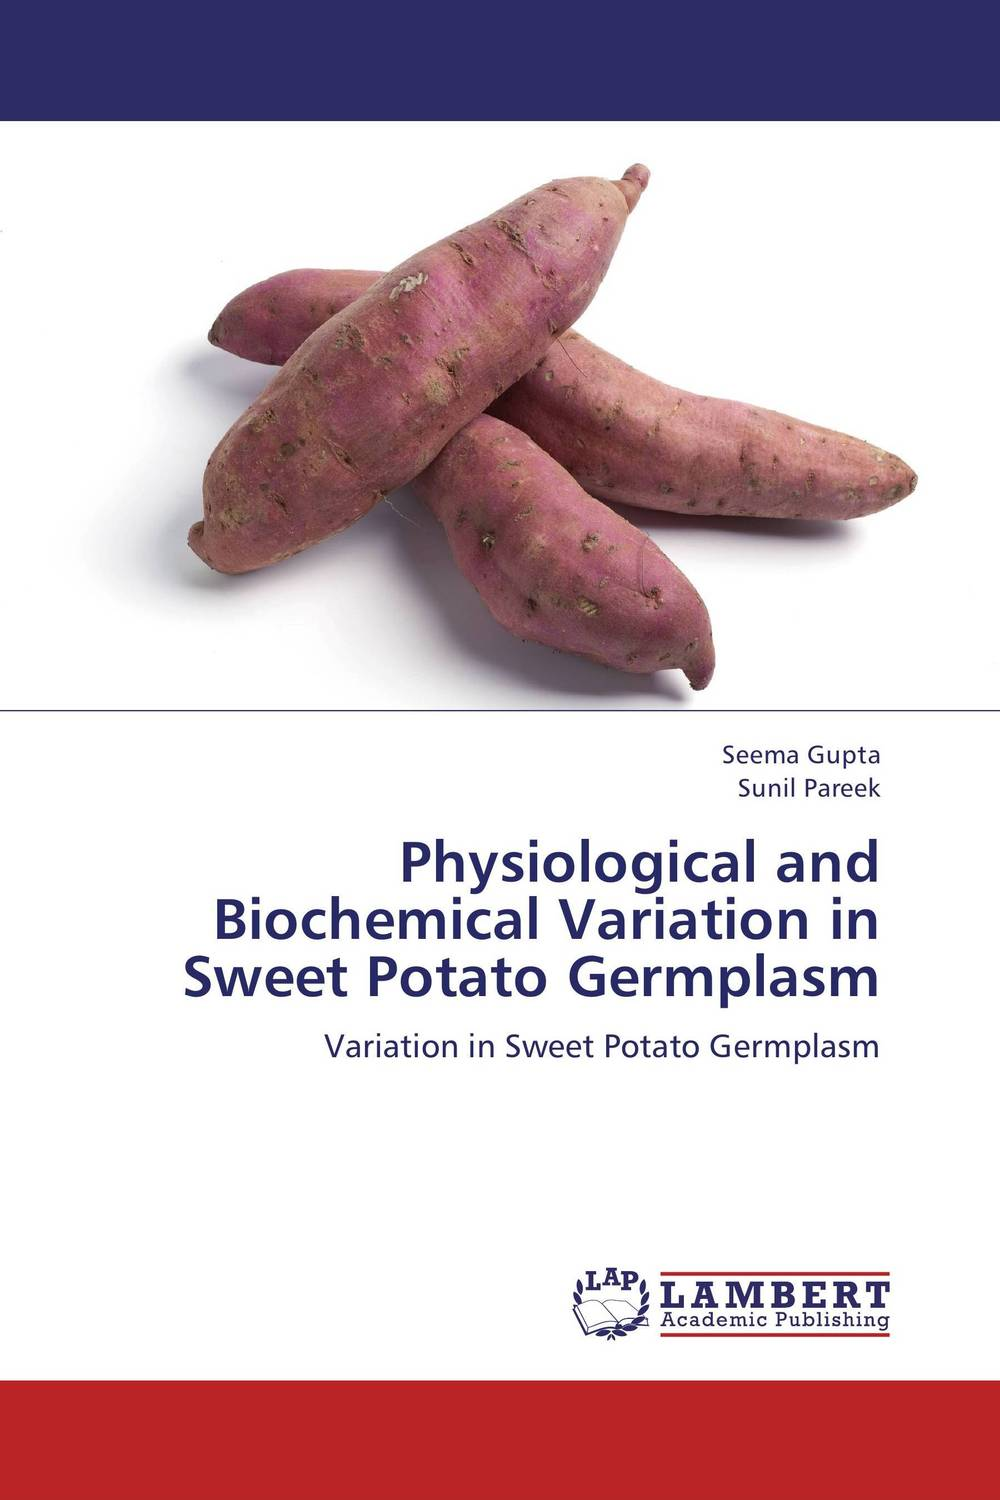 Physiological and Biochemical Variation in Sweet Potato Germplasm manuscript found in accra